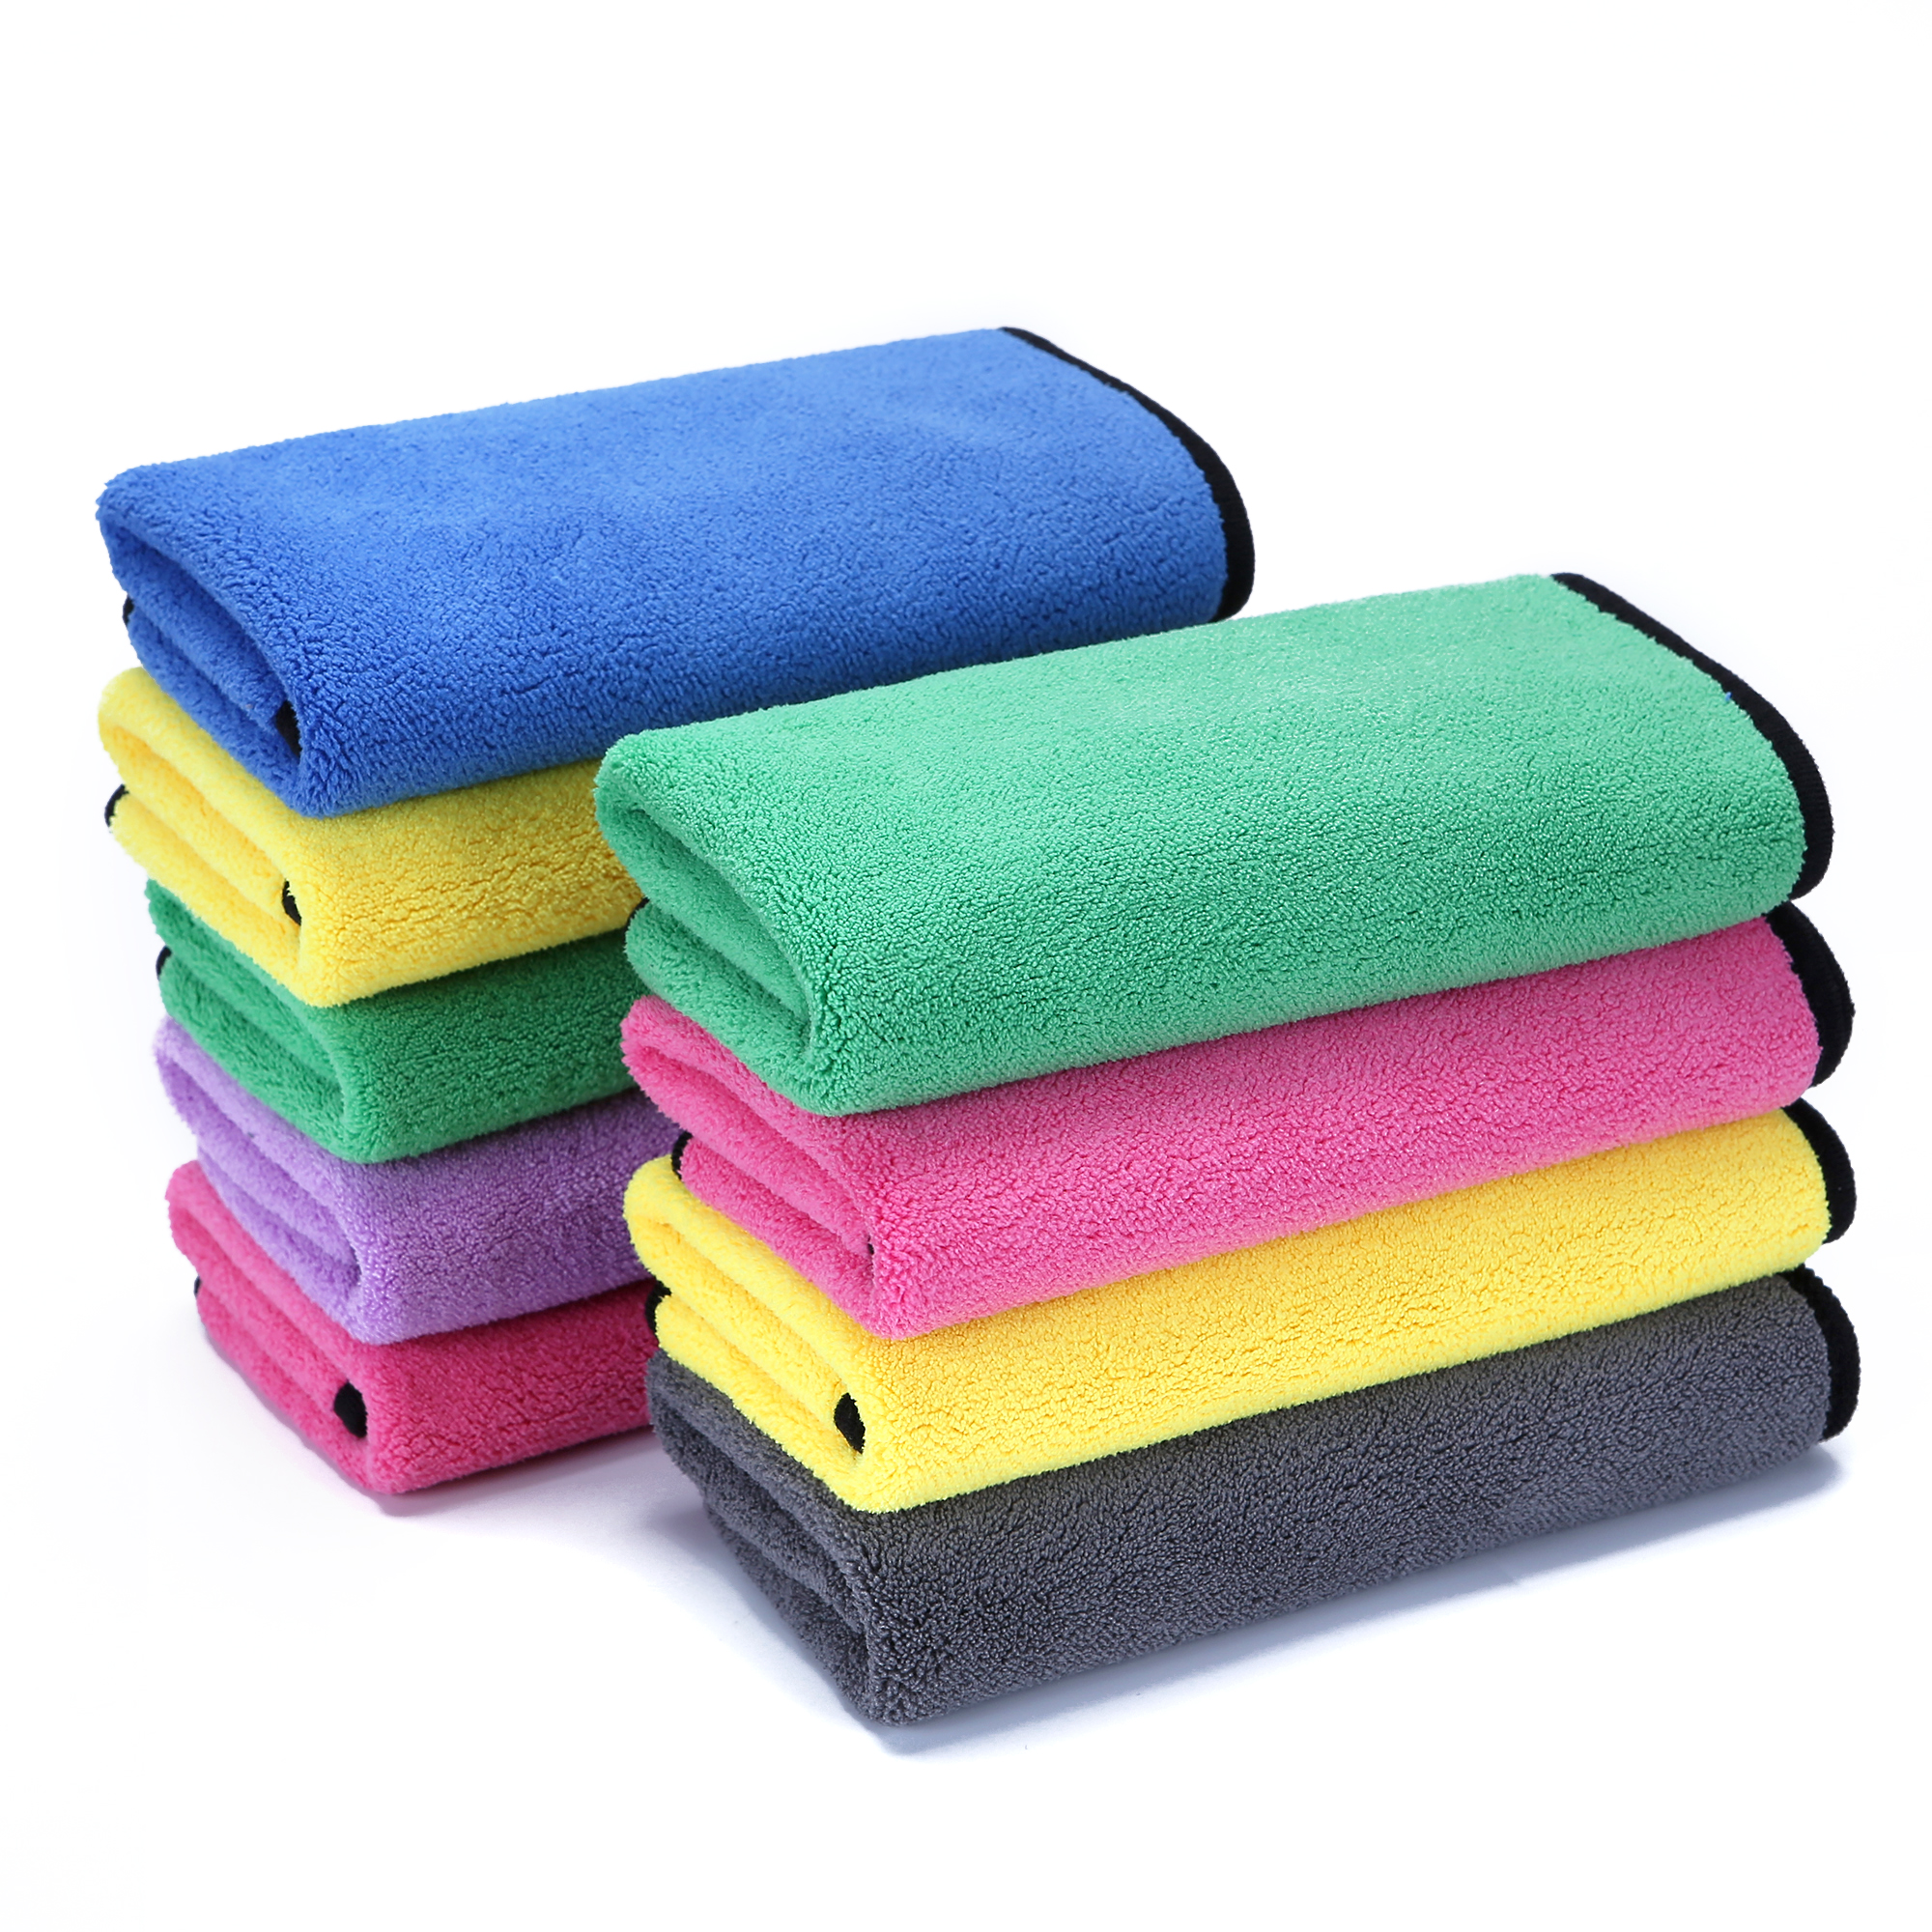 Image 2 - 2pcs/lot Cleaning Cloth Microfiber Car towel Wash Plush Car Cleaning Washing Drying Super Absorbent Towel Free Shipping-in Car Towel from Automobiles & Motorcycles